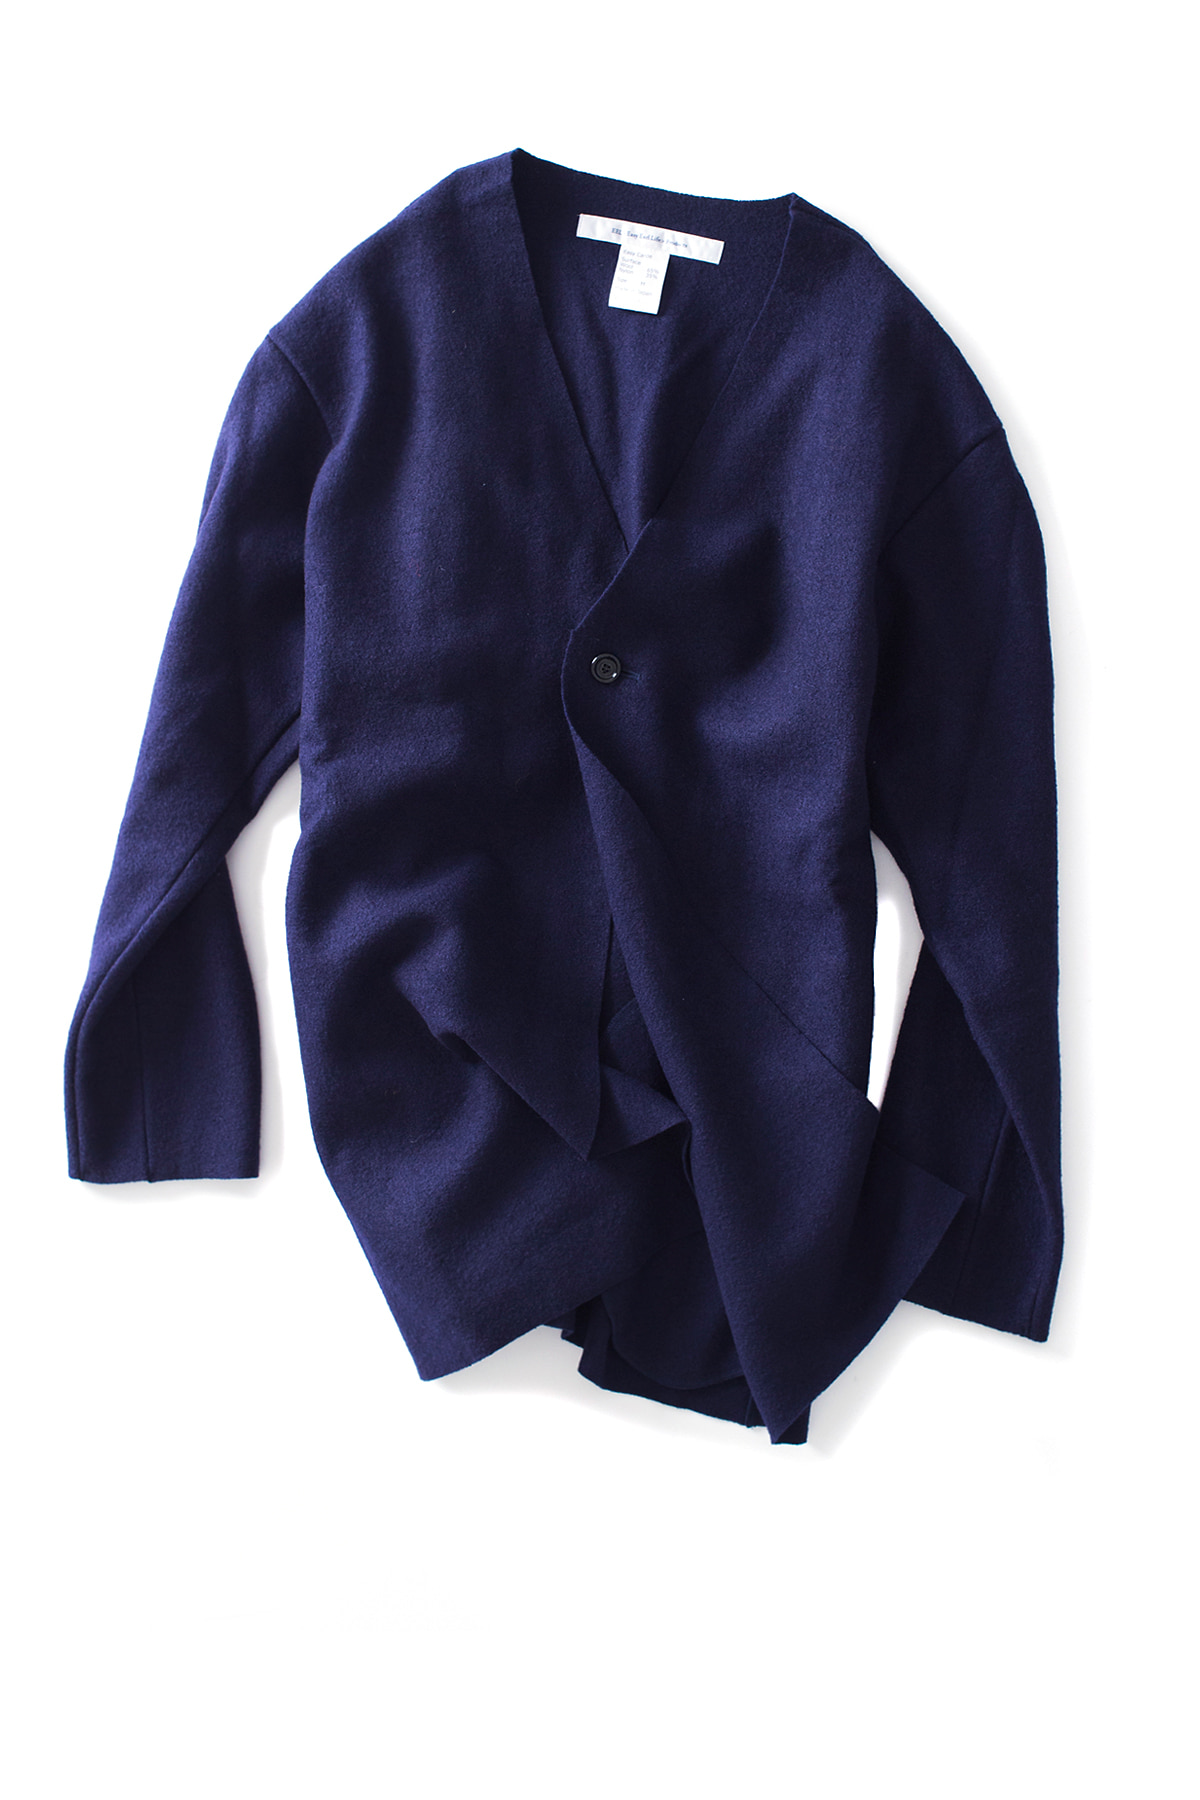 EEL : The Easy Cardigan (Navy)